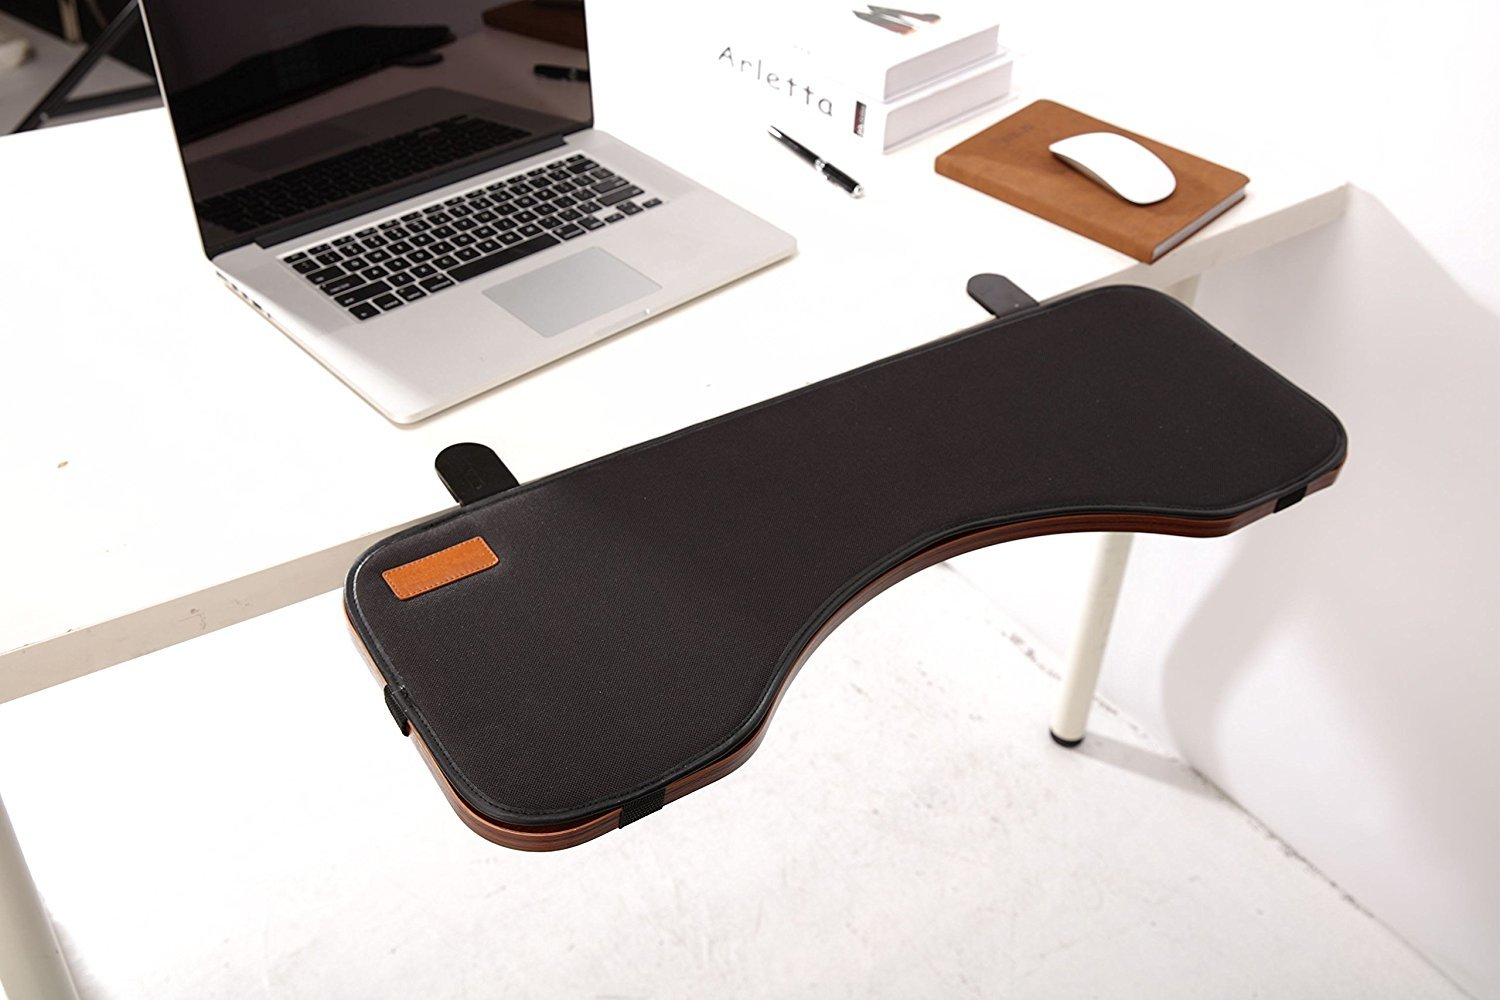 Fuzadel Ergonomics Keyboard Tray & Mouse Pad, Adjustable Height & Angle Ergonomic Standing Computer Keyboard Stand